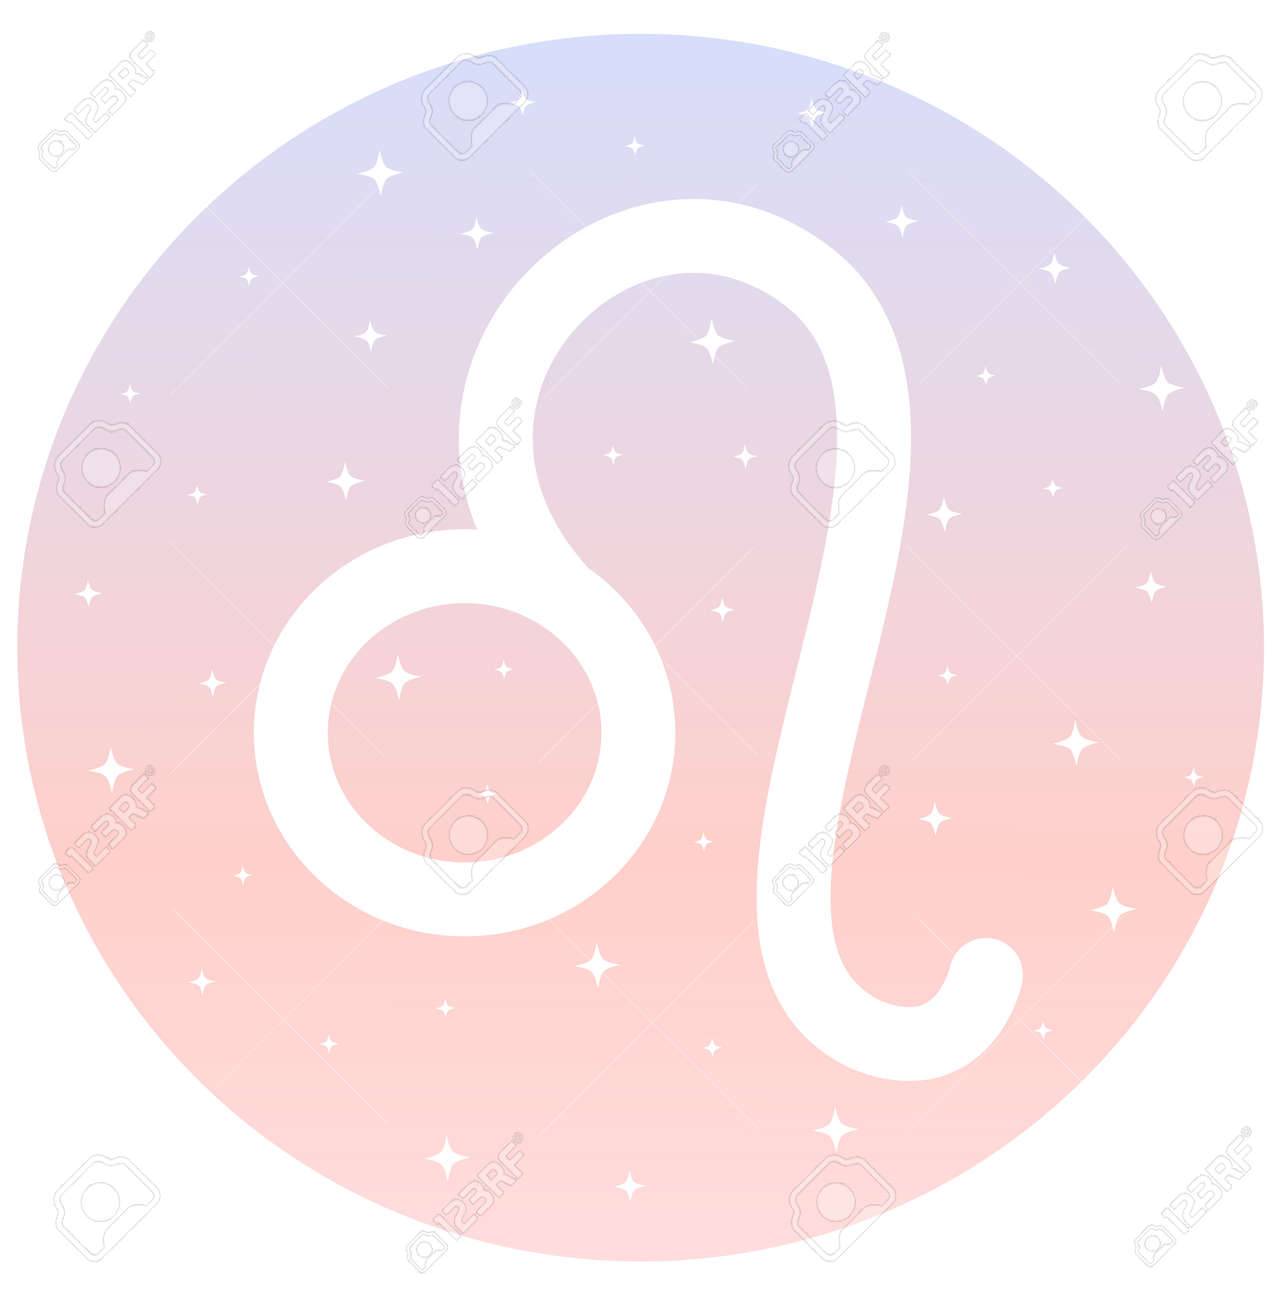 leo zodiac signs circle icon on pink and blue gradient background